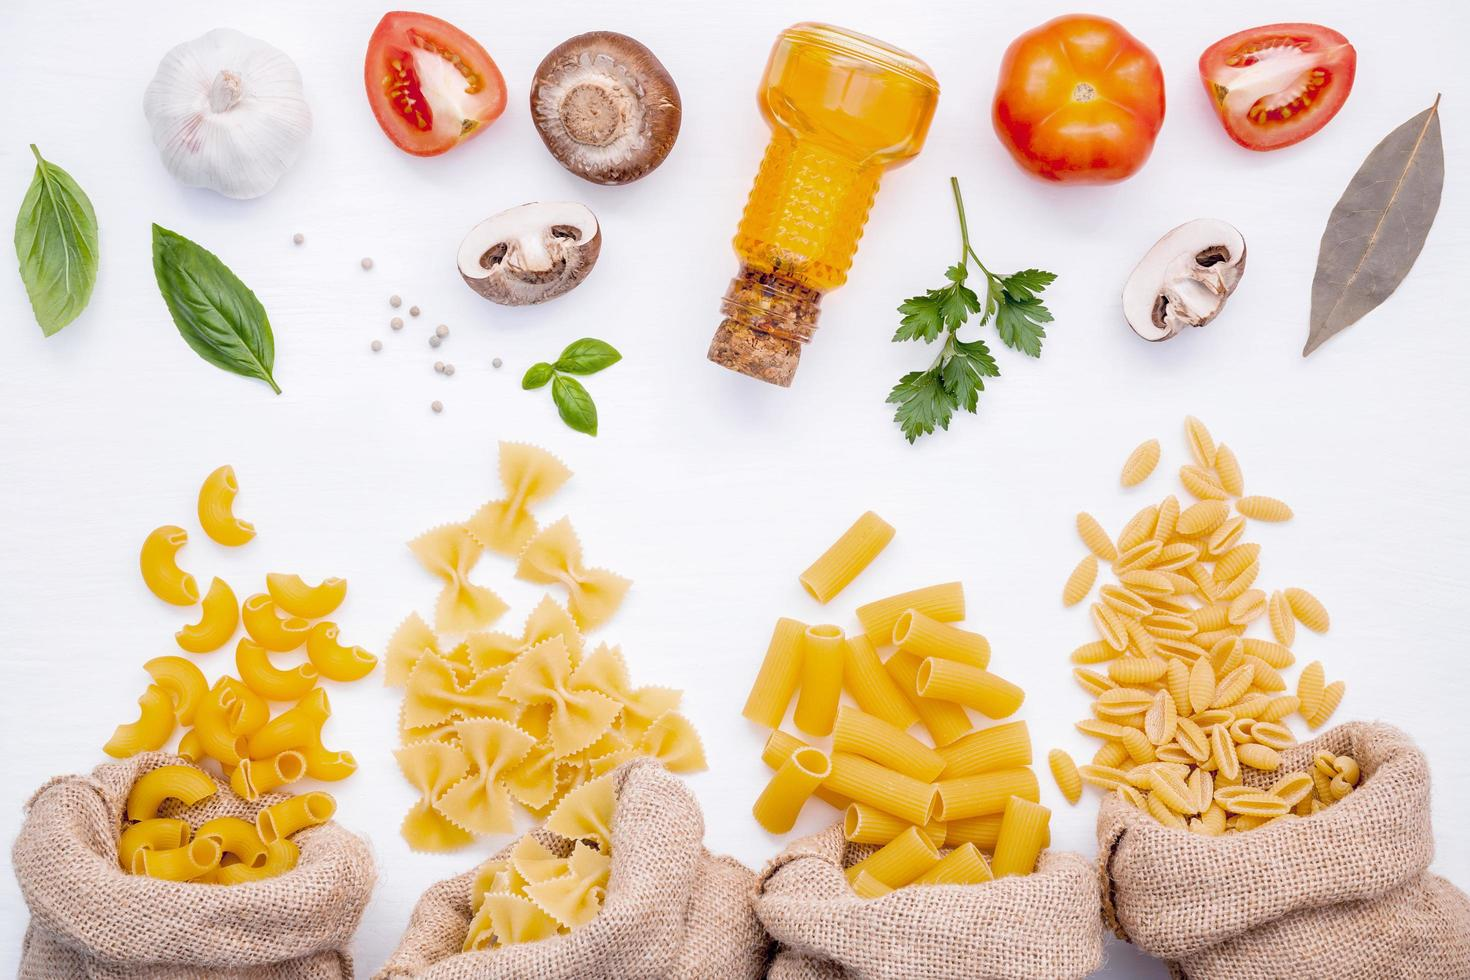 Assorted pasta and cooking ingredients photo